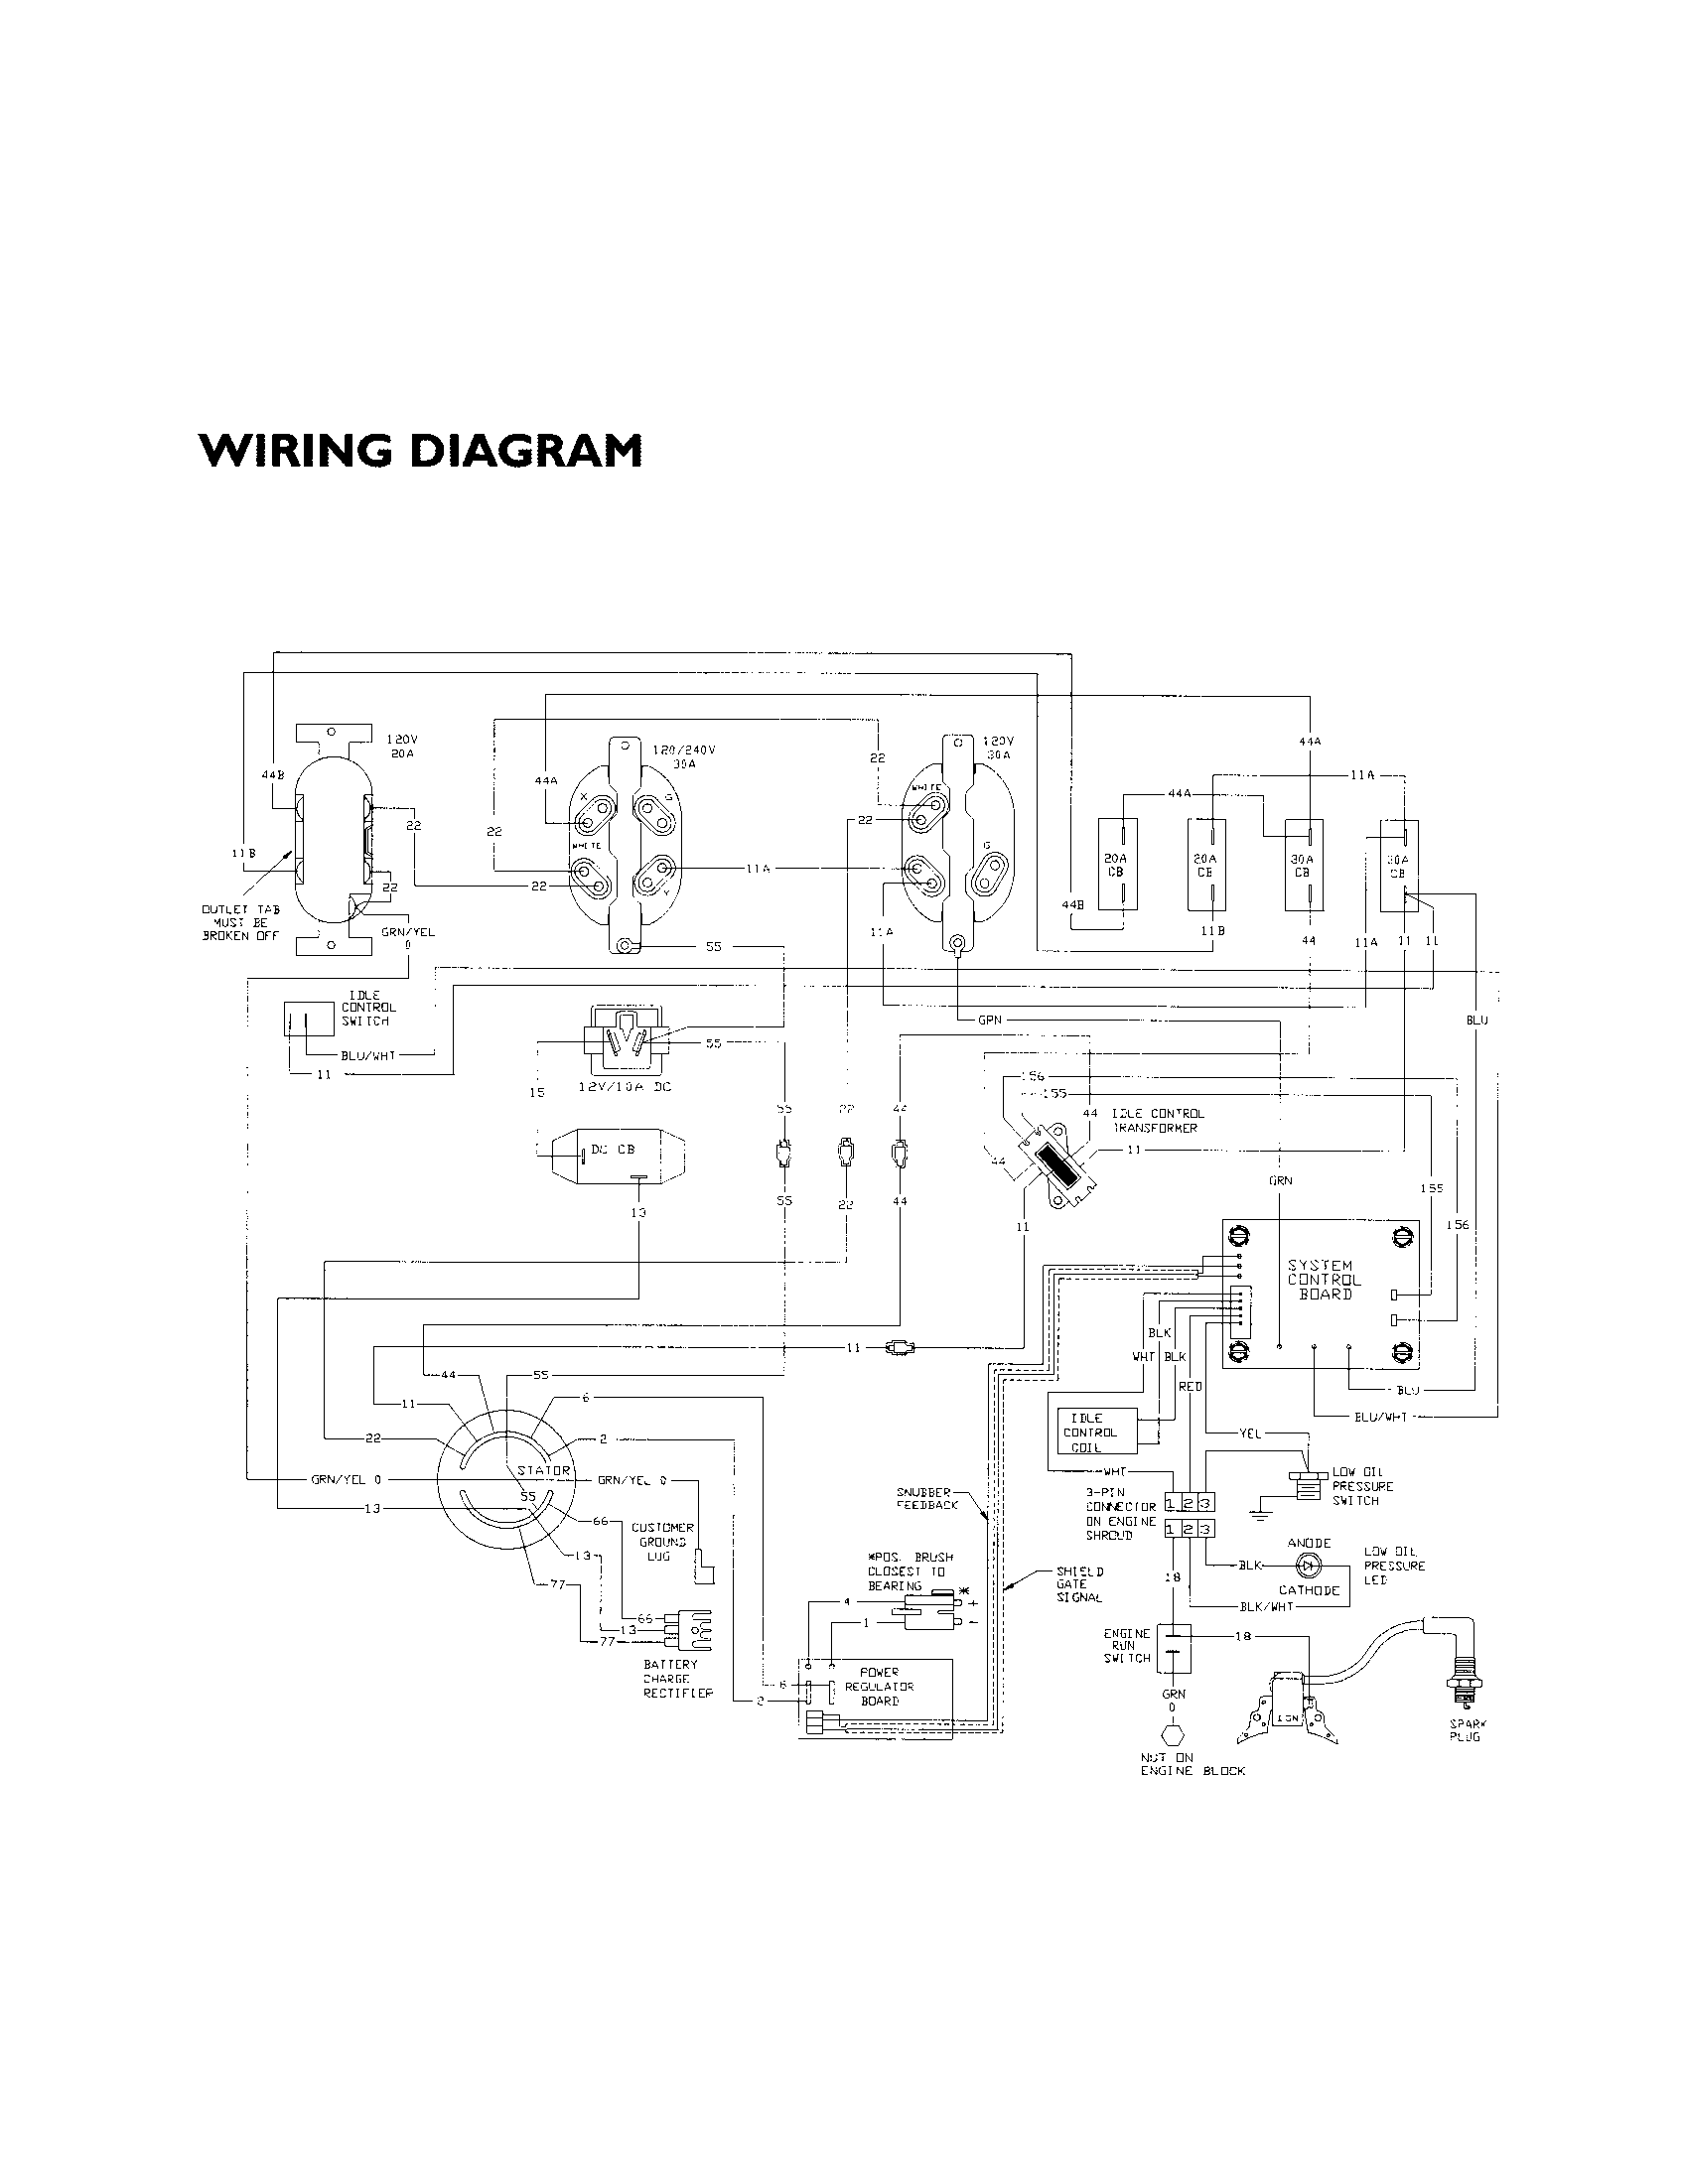 Automotive Generator Wiring Diagram : Dayton home generator wiring diagram automotive